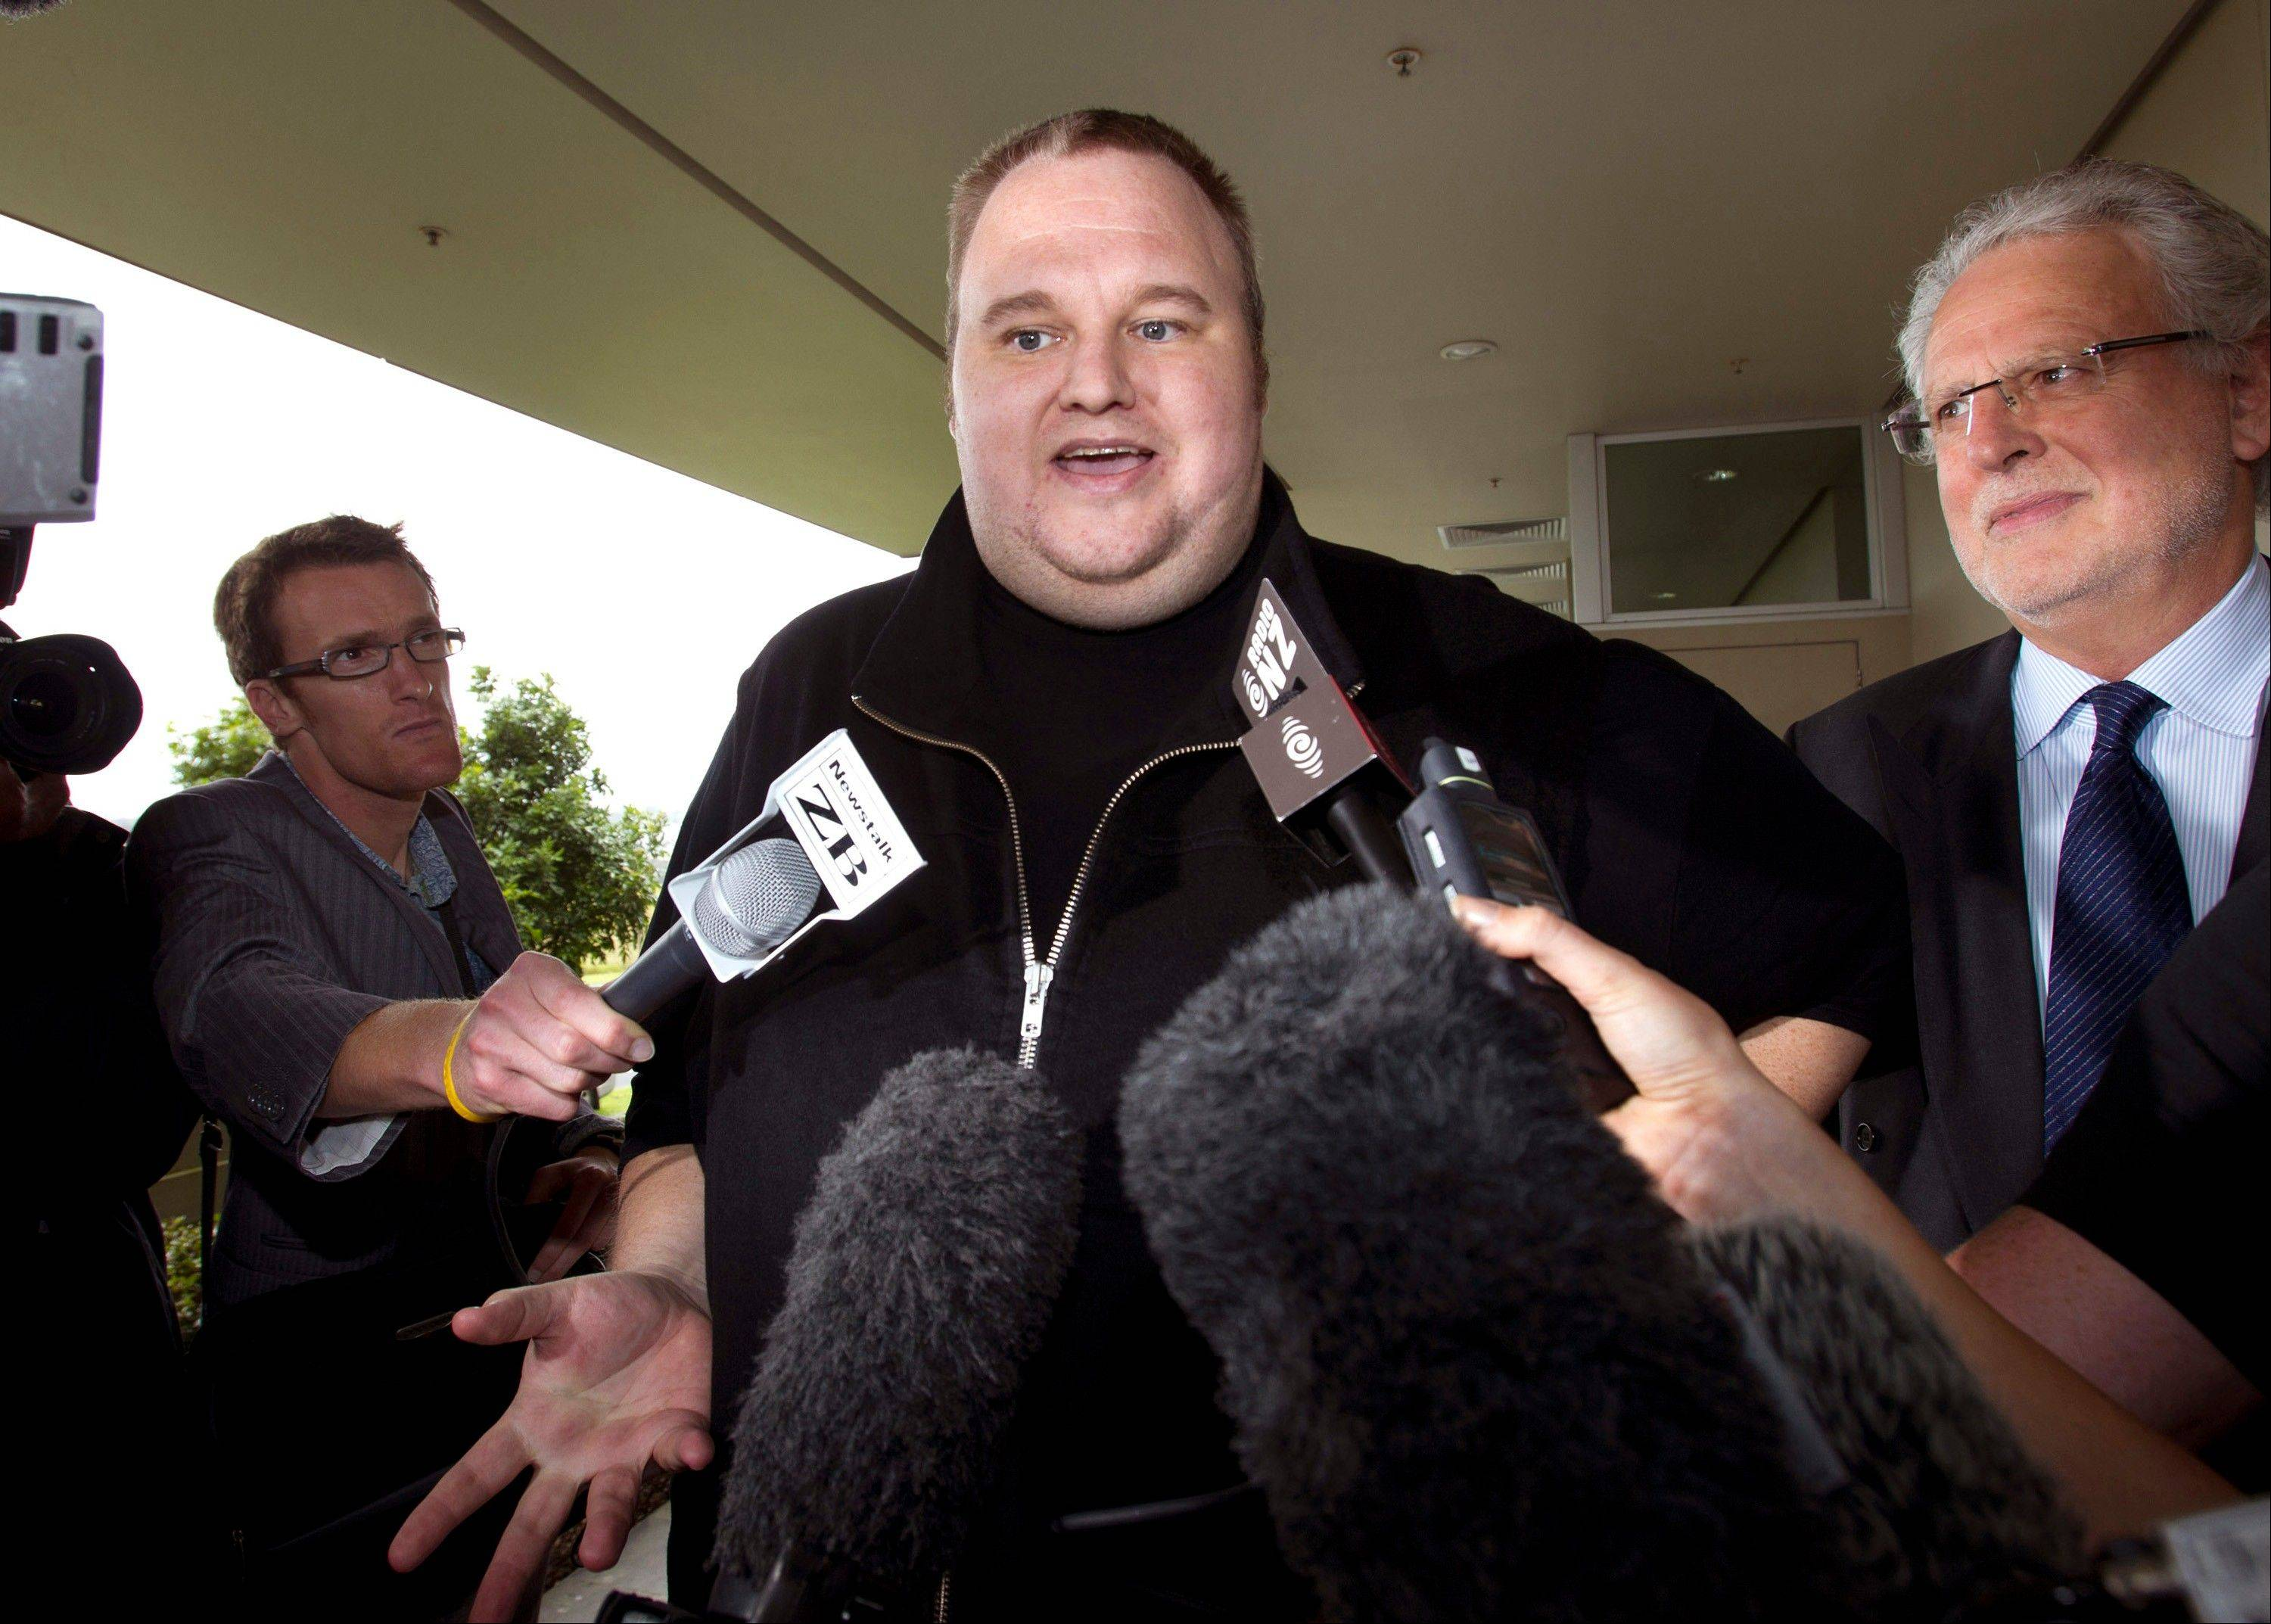 Indicted Megaupload founder Kim Dotcom has launched a new file-sharing website in a defiant move against the U.S. prosecutors who accuse him of facilitating massive online piracy. The colorful entrepreneur unveiled the �Mega� site ahead of a lavish gala and news conference planned at his New Zealand mansion on Sunday night.